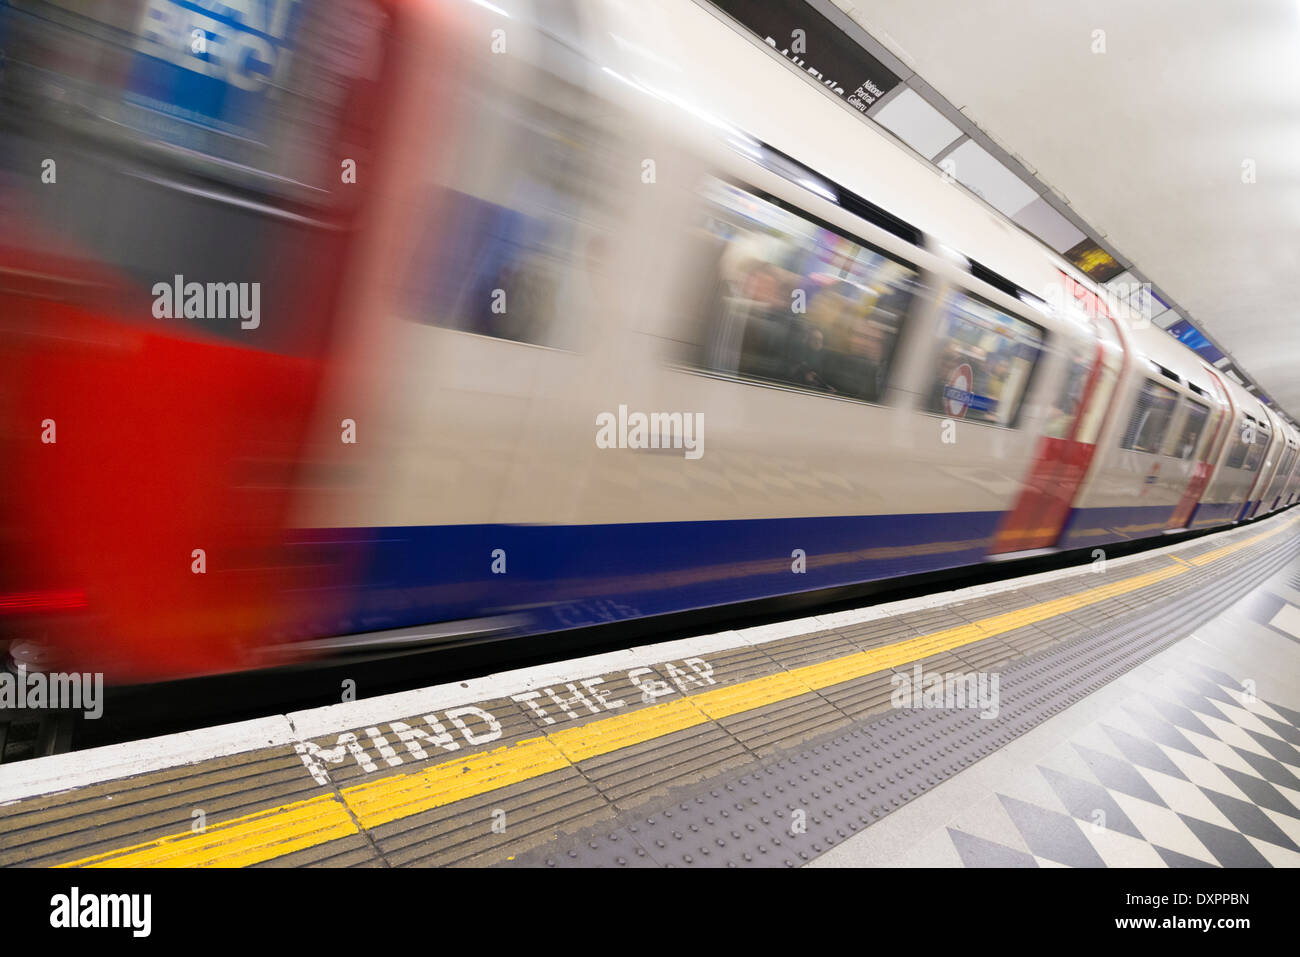 Train leaving London Underground station, England UK - Stock Image